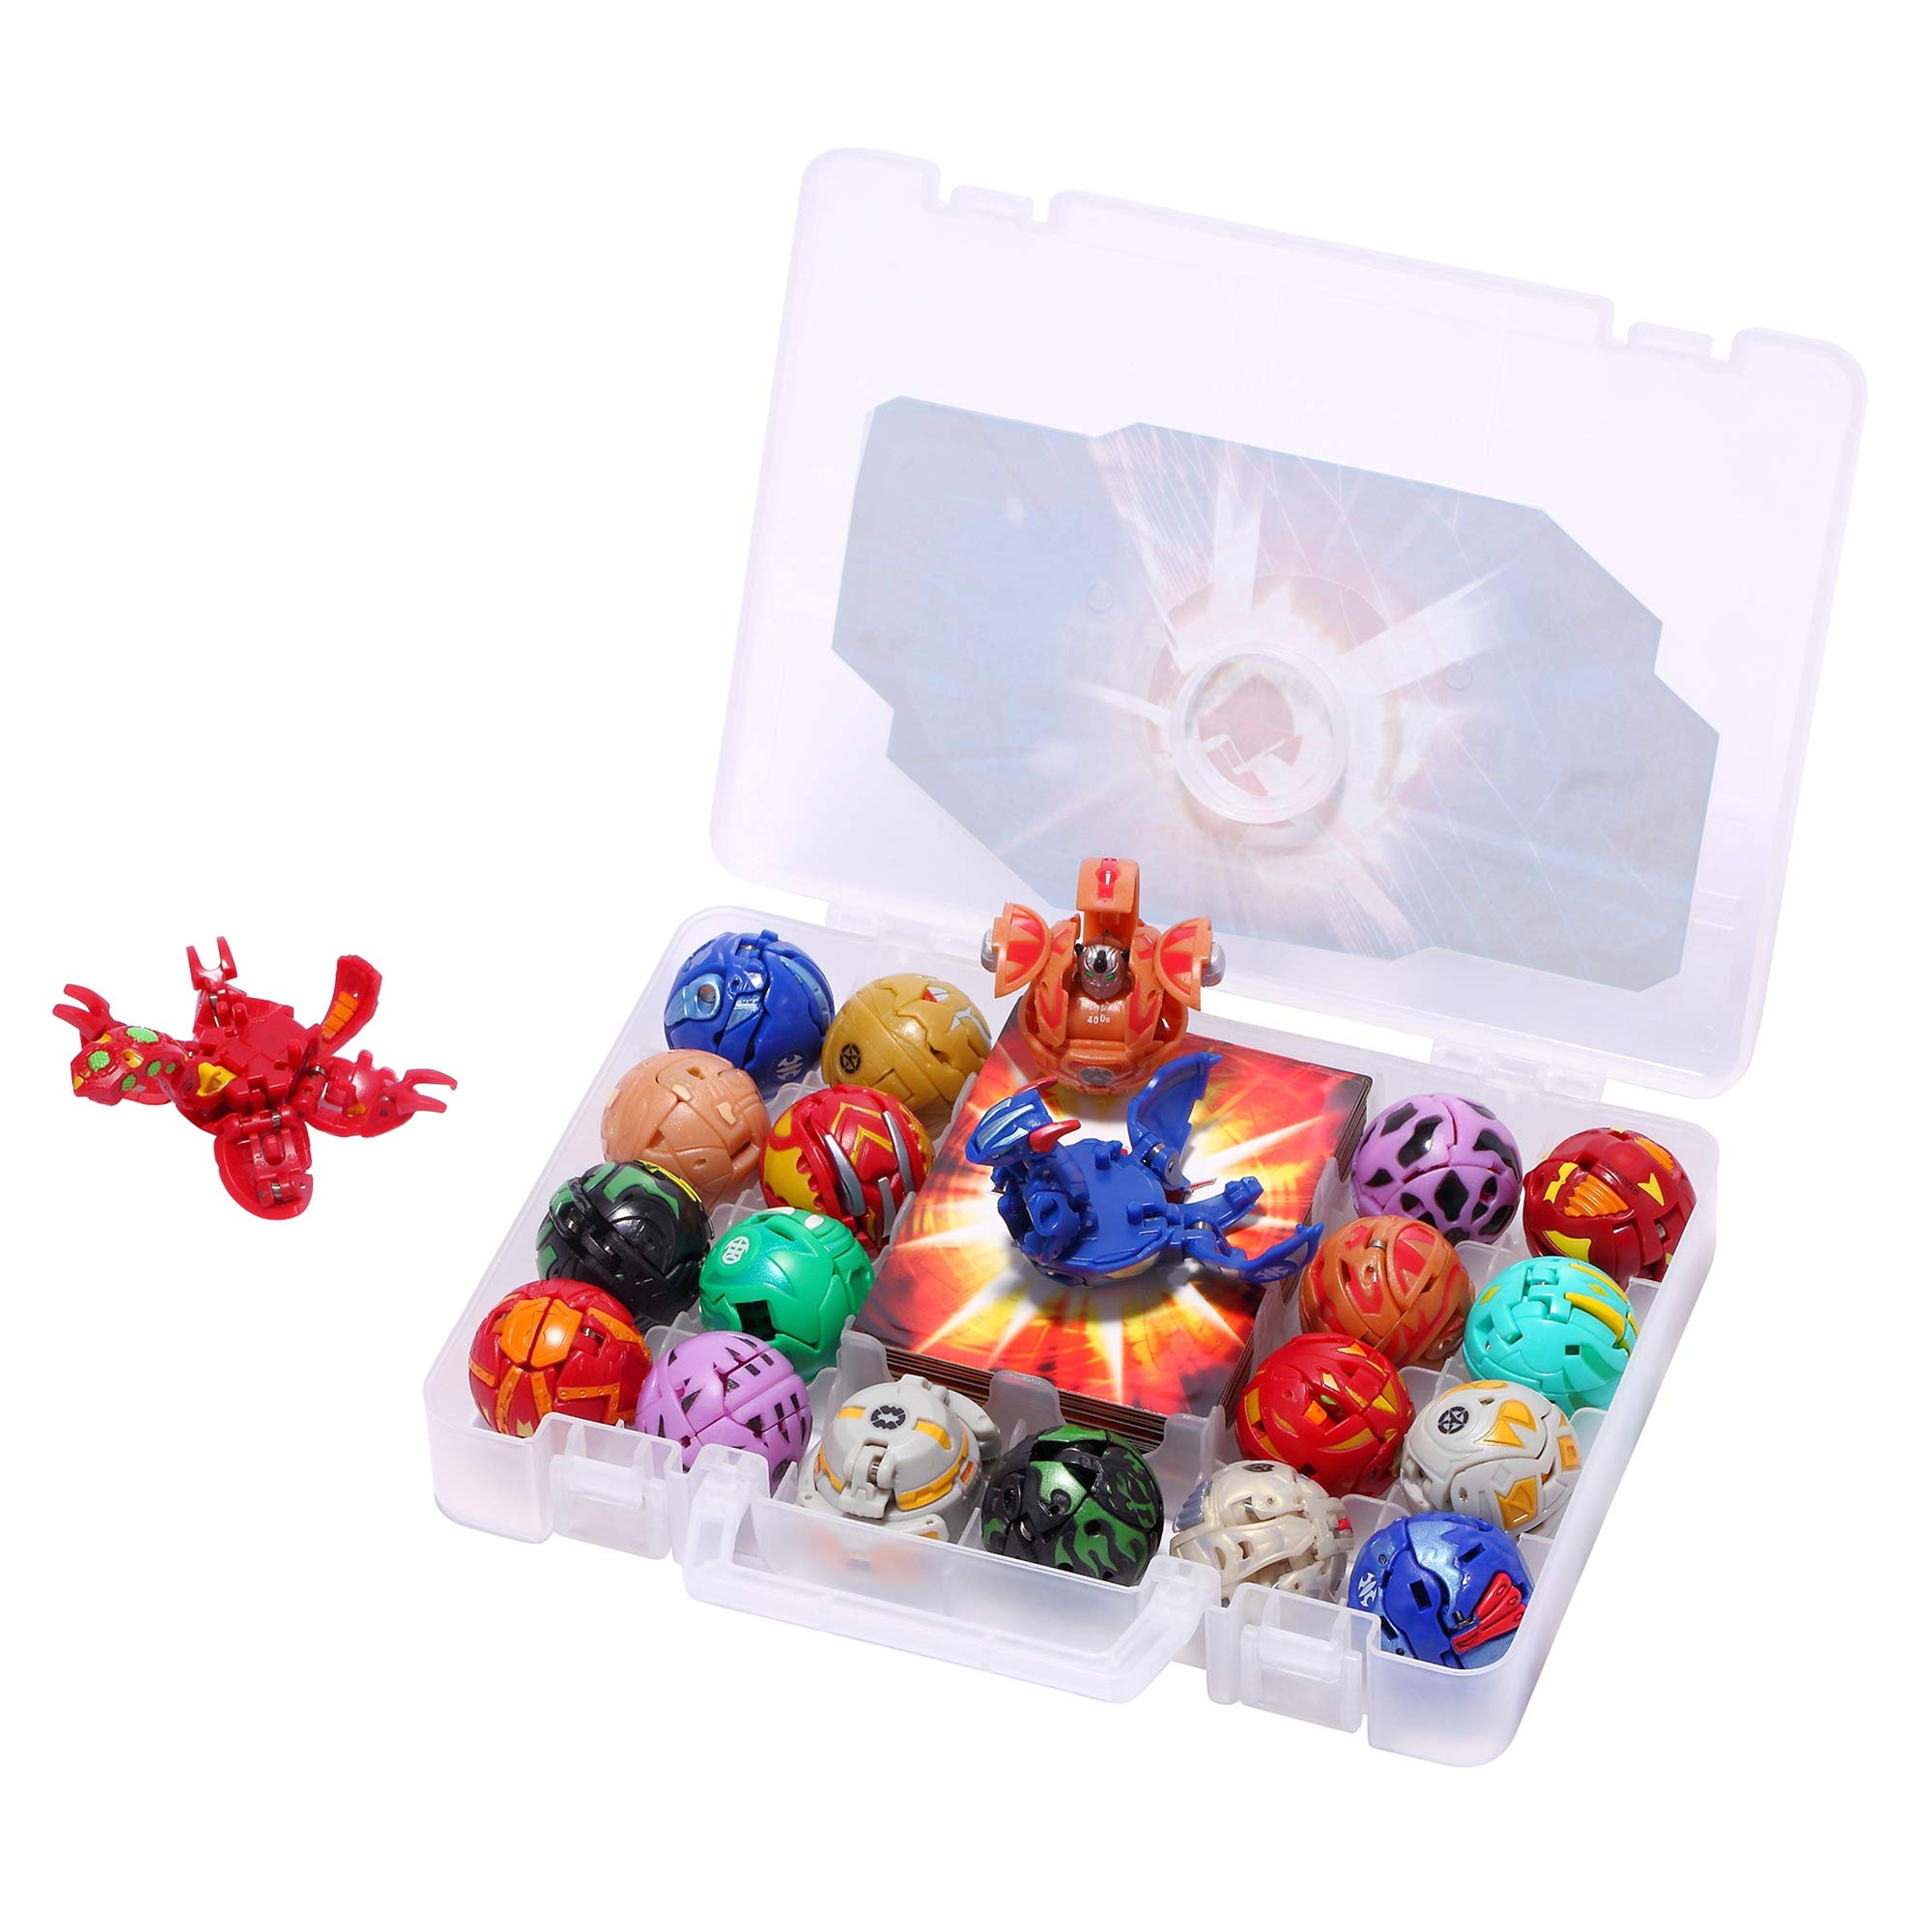 Battle Brawlers Bakugan Pack, 18 Bakugan All Different + 18 Metal Gate Card with Baku-Storage Case Great Toy Gift and Collection, for Ages 6 and Up (18-Pack)